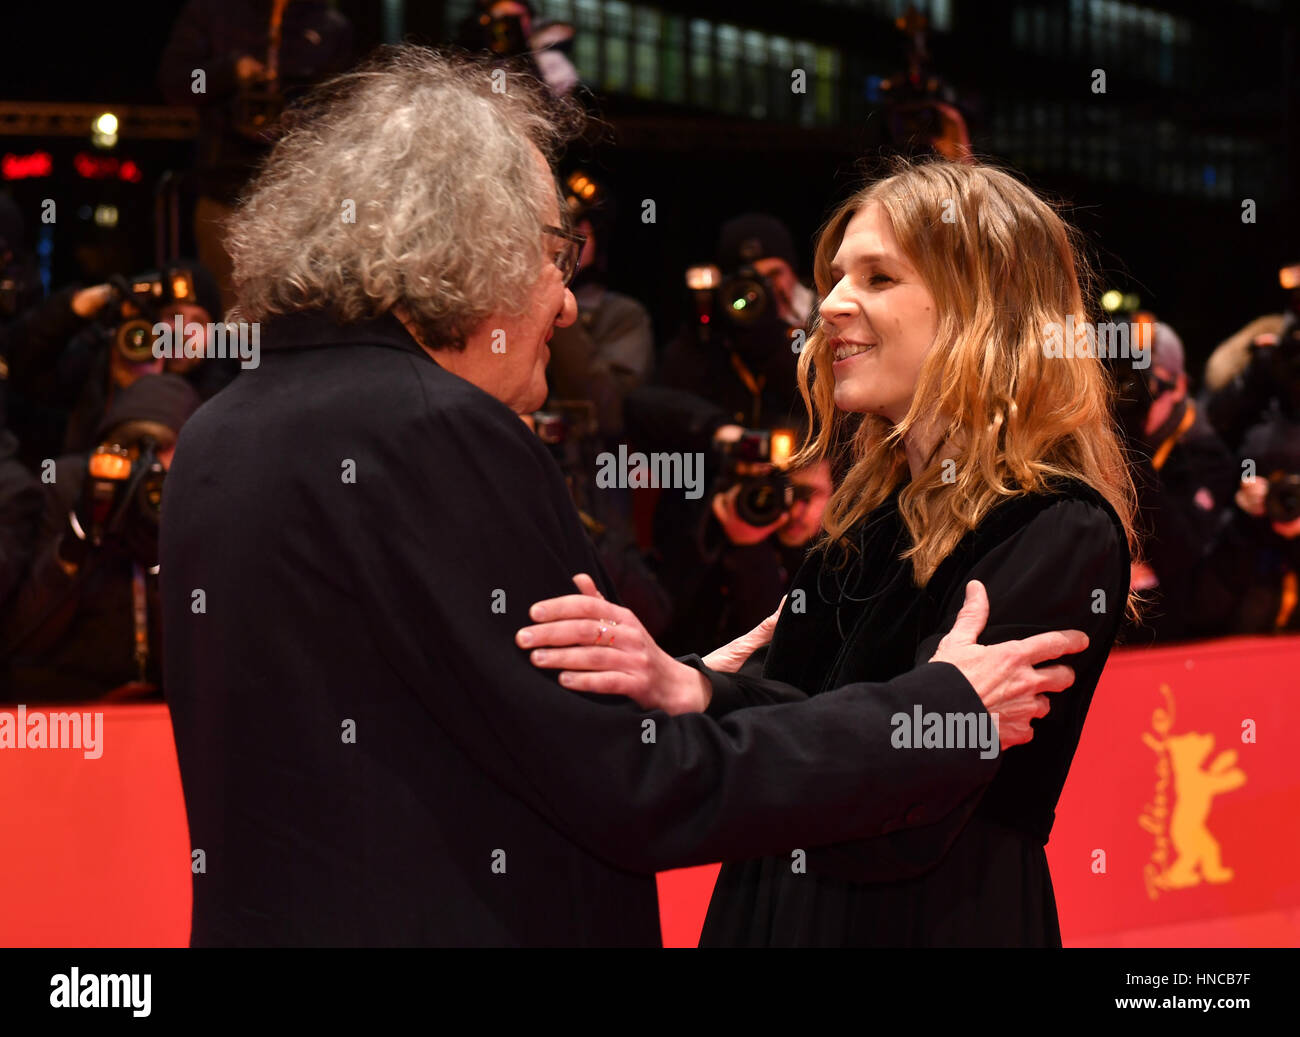 Berlin, Germany. 11th Feb, 2017. Actors Geoffrey Rush and Clemence Poesy at the premiere of US film 'Final Portrait' Stock Photo